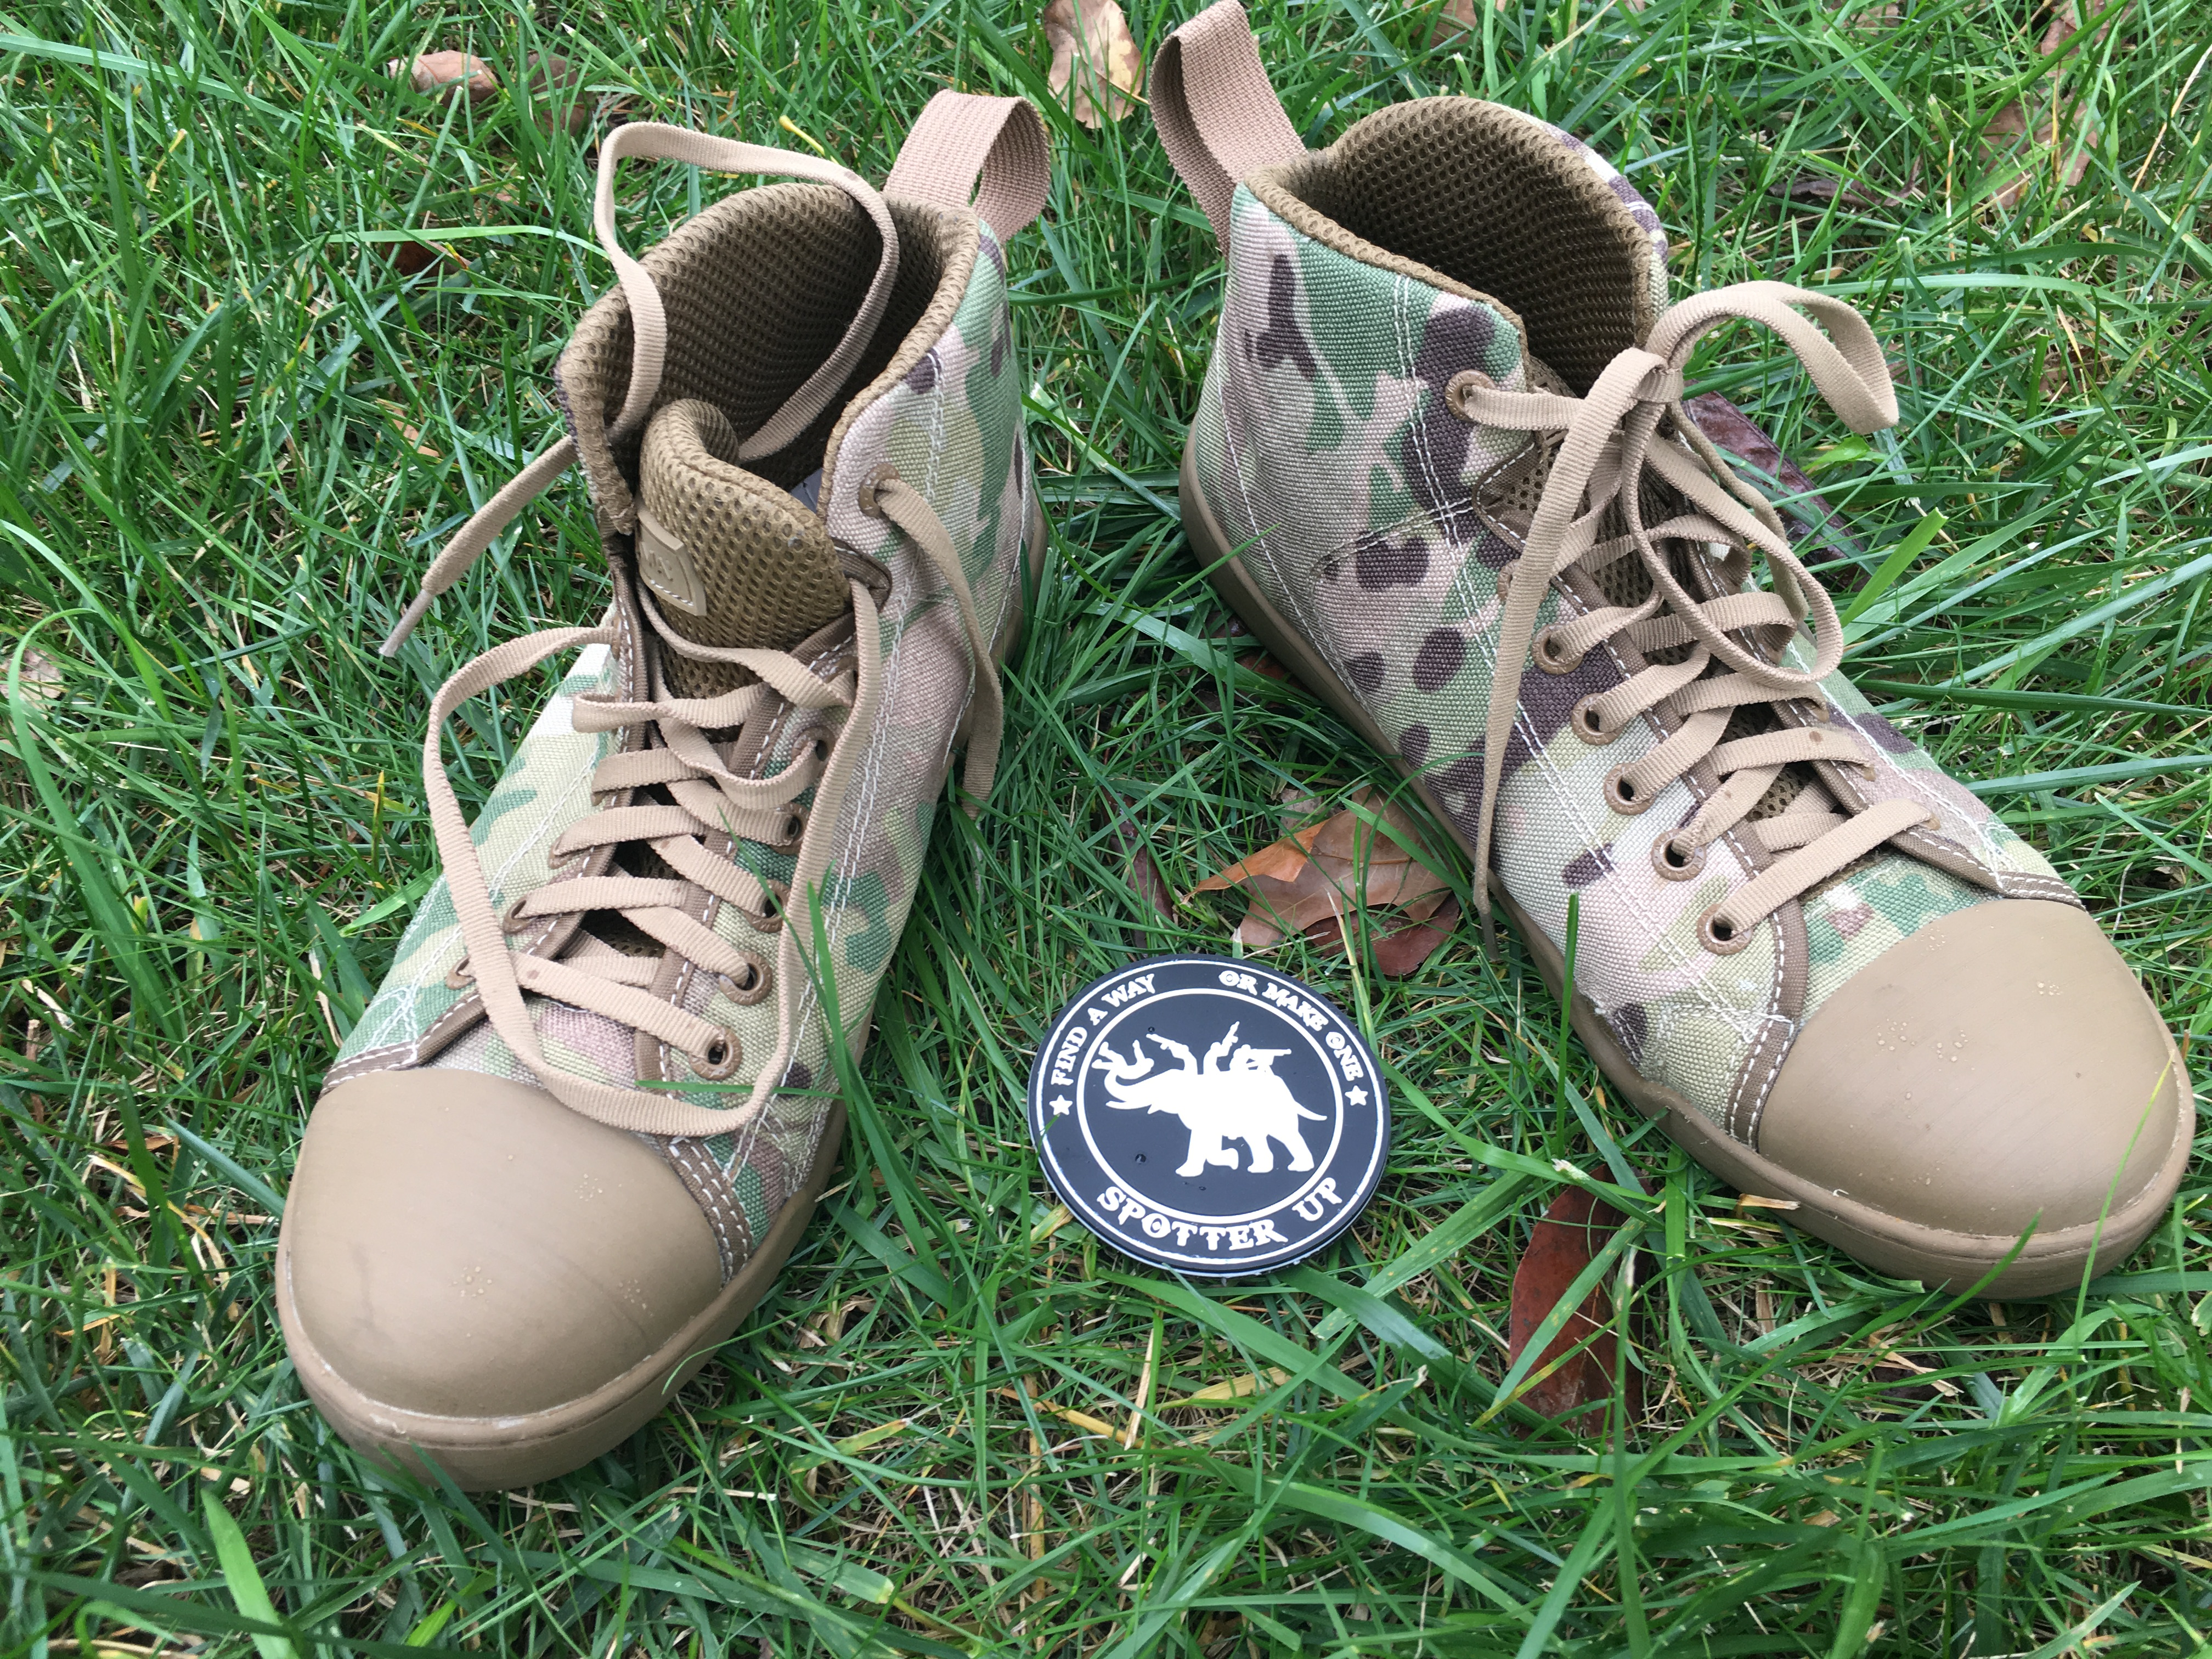 2a36416d7488 Altama - OTB Maritime Assault Mid Boots Product Review • Spotter Up